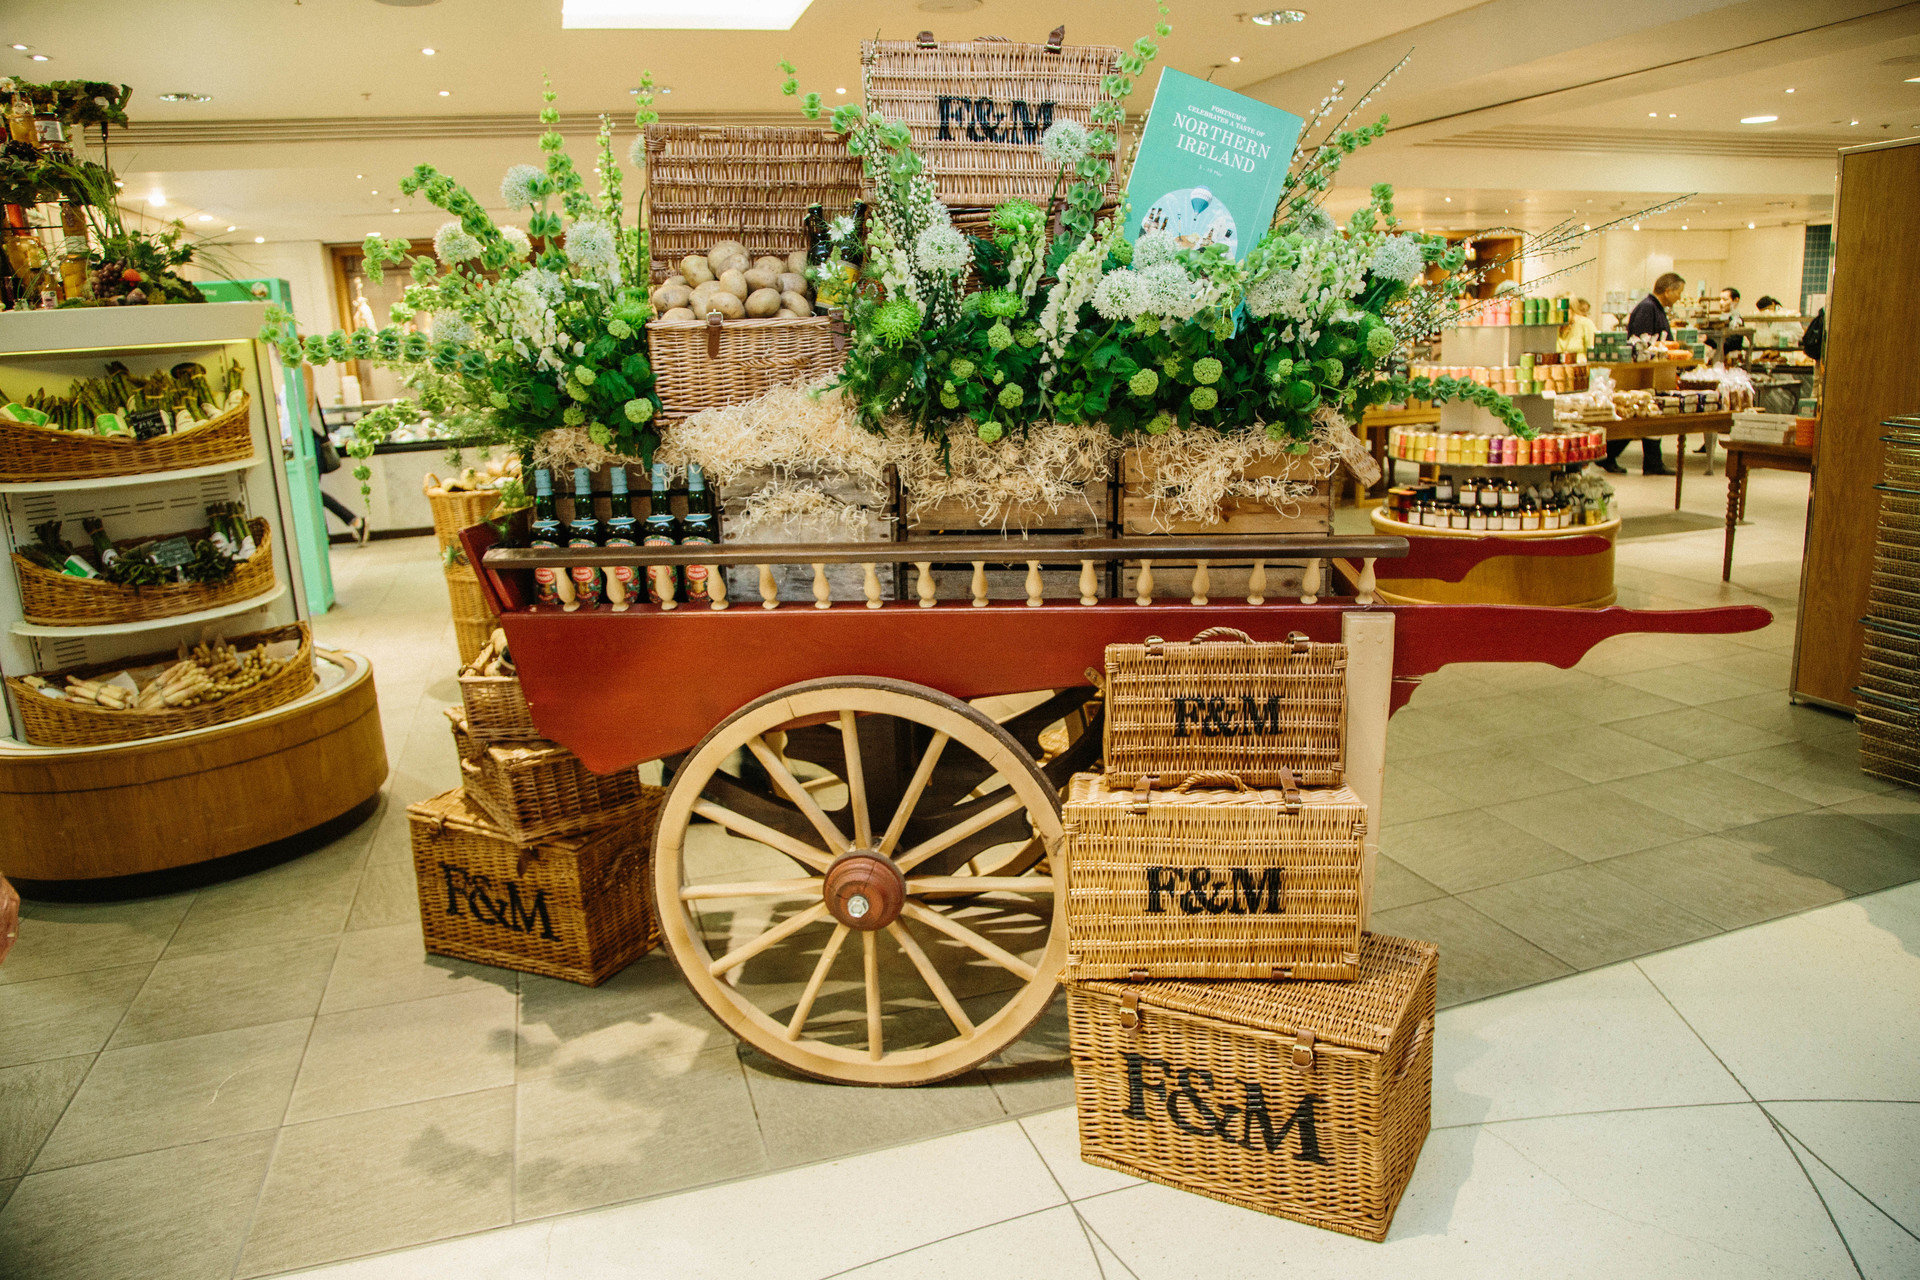 basket food Food + Drink gourmet grocery interior Shop shopping store floor indoor tourist attraction